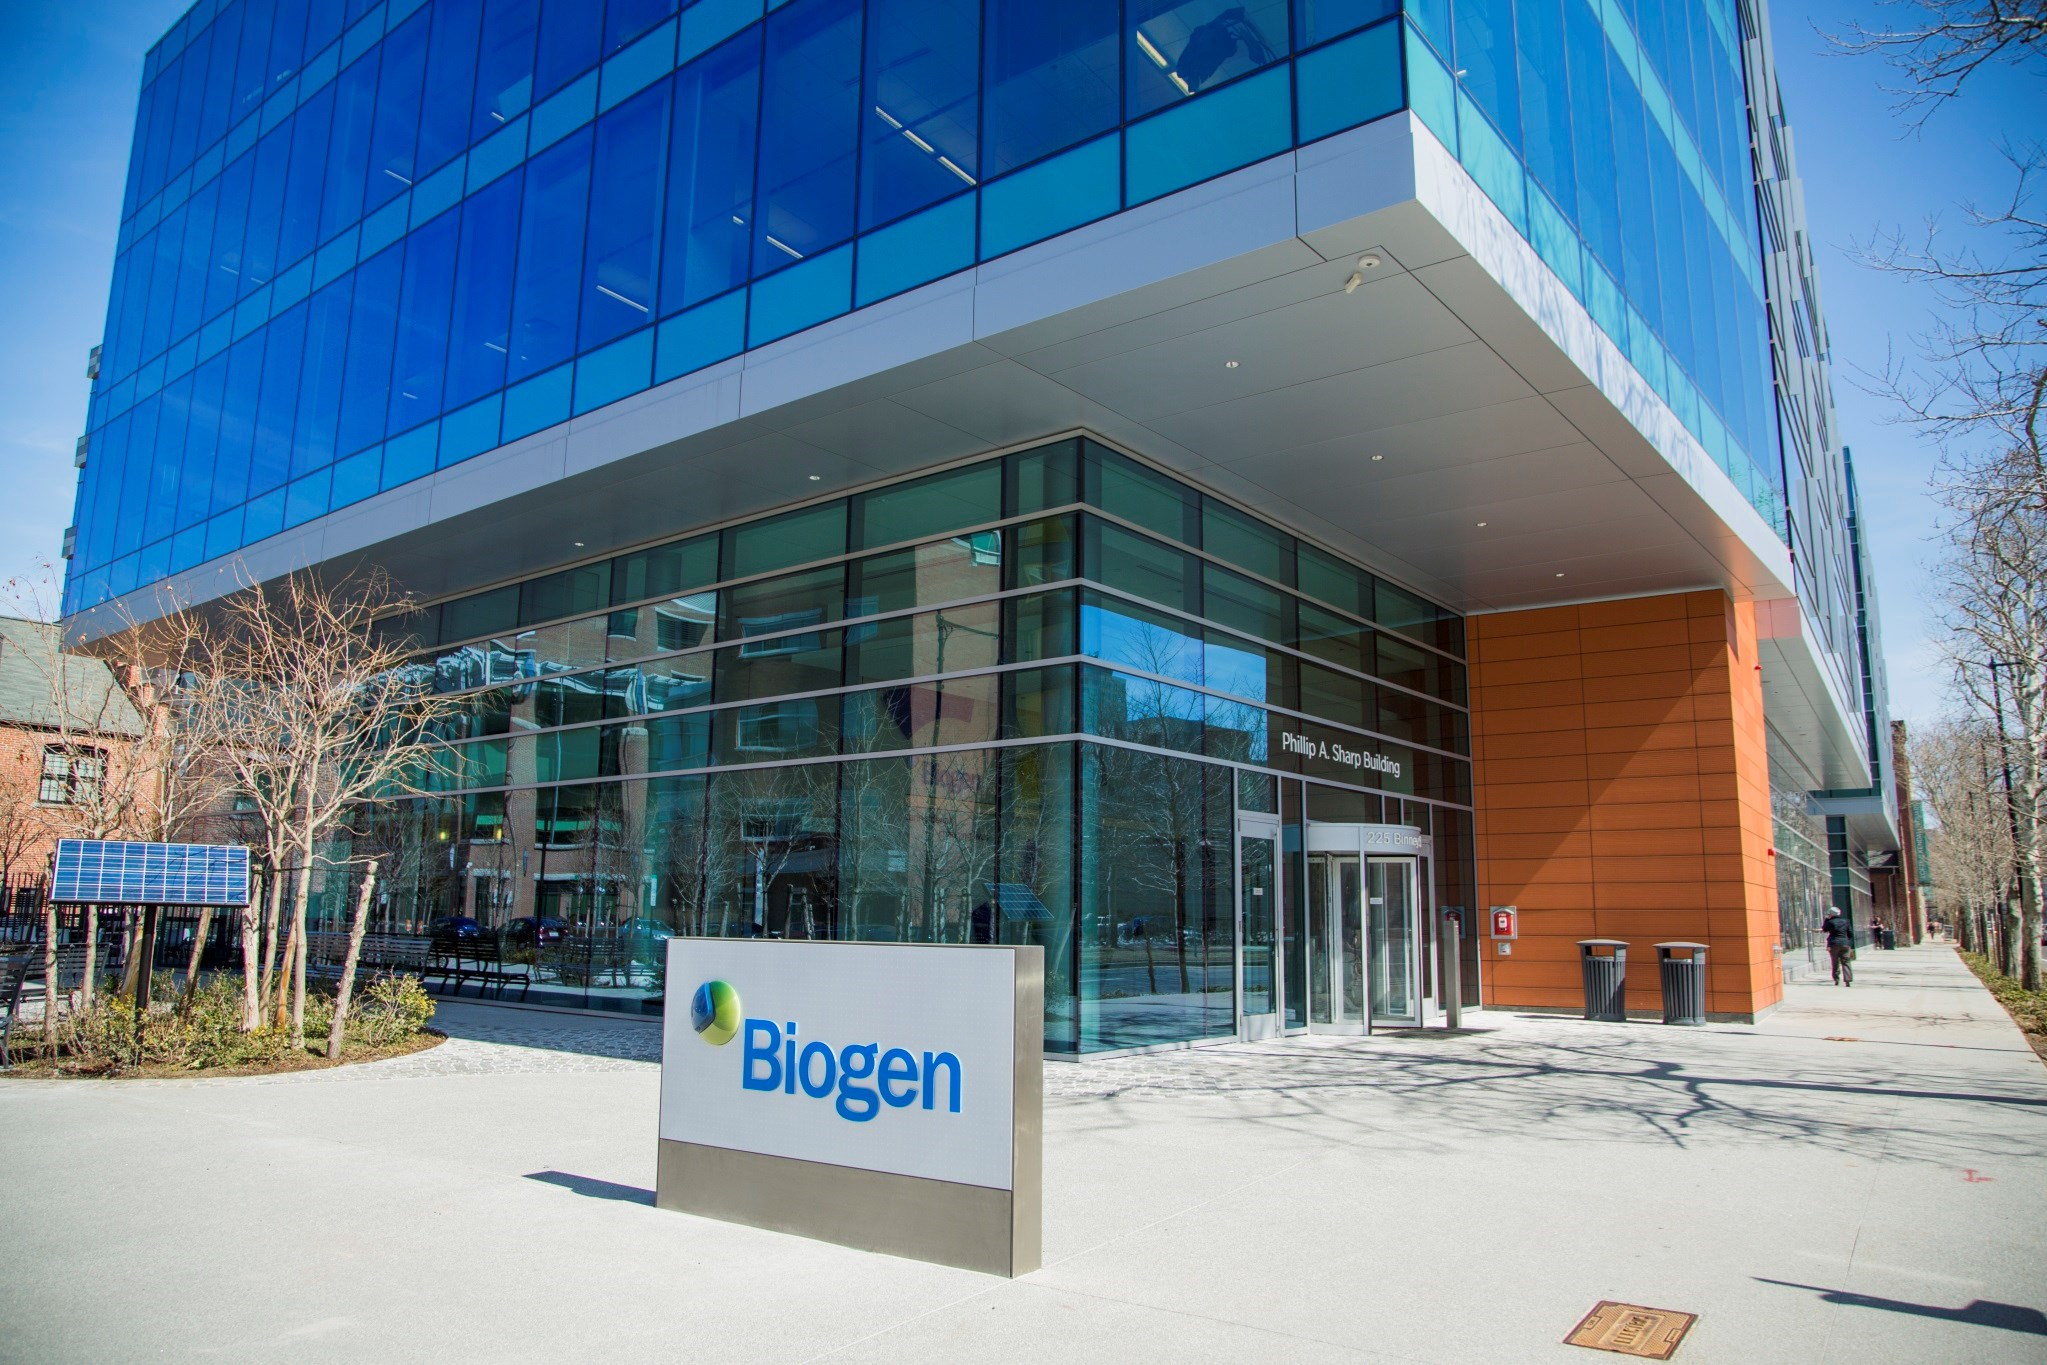 Biogen forms collaboration to develop treatments for eye diseases.